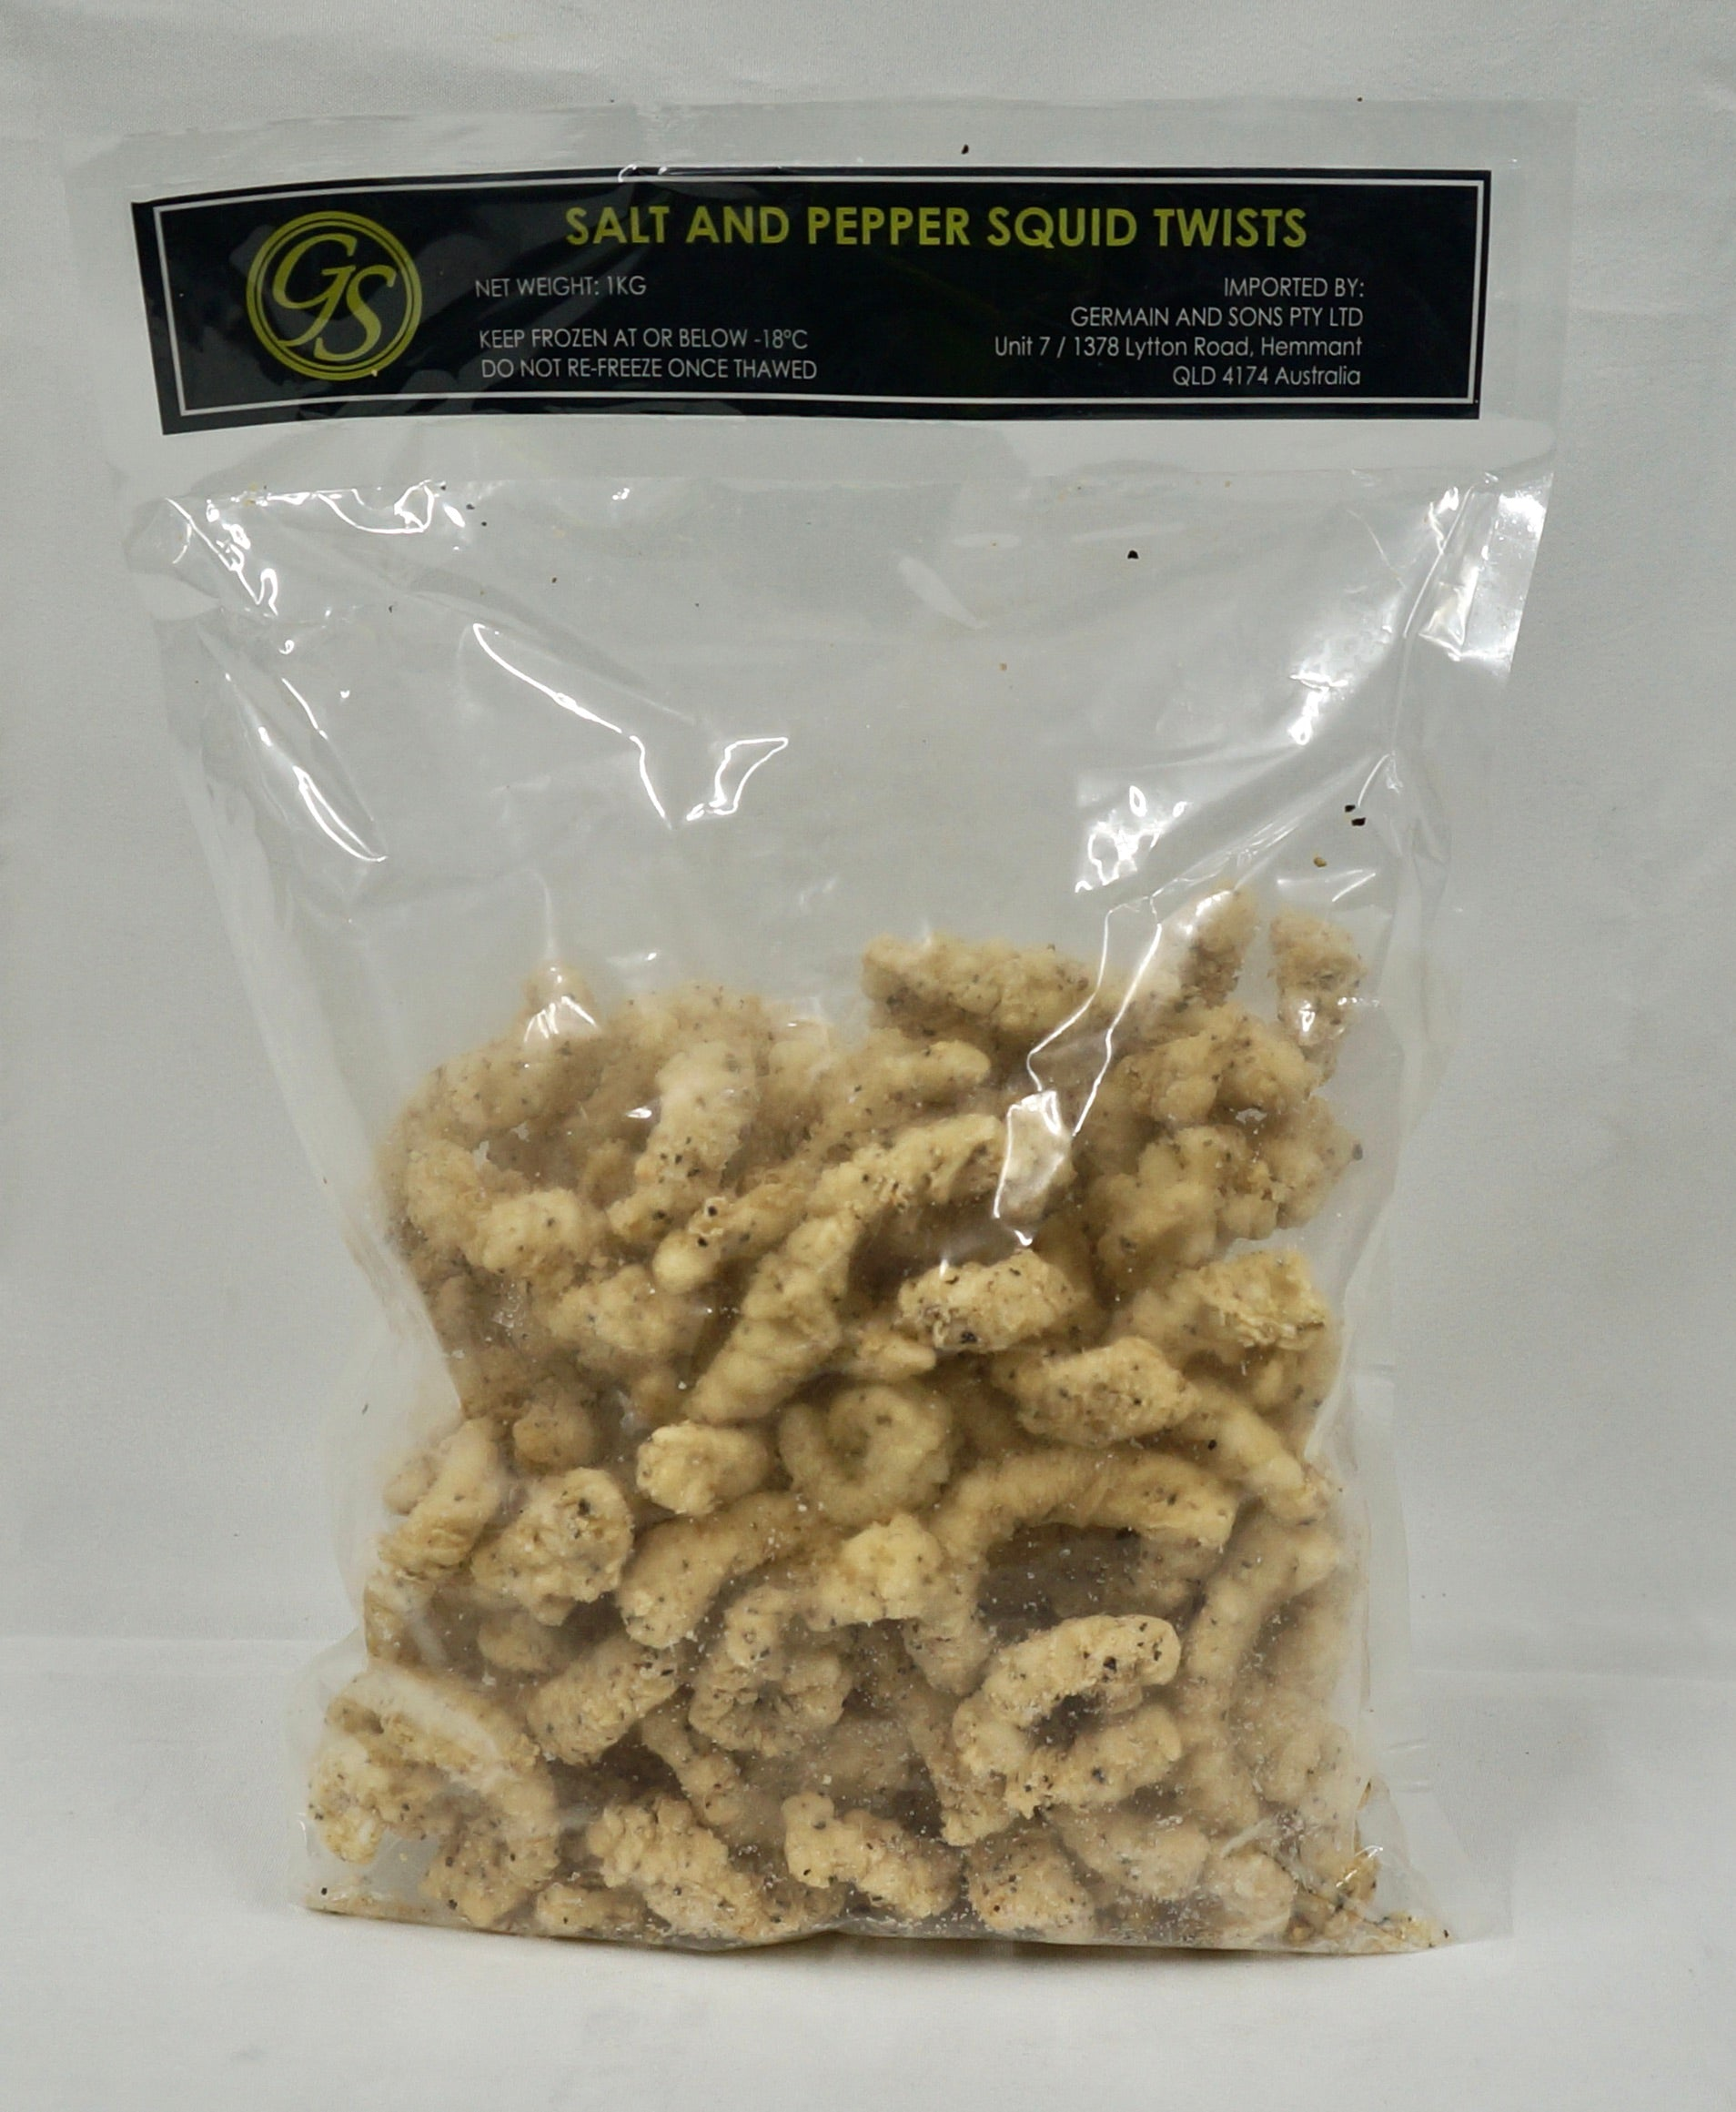 Salt and Pepper Calamari Twists 1kg Bag